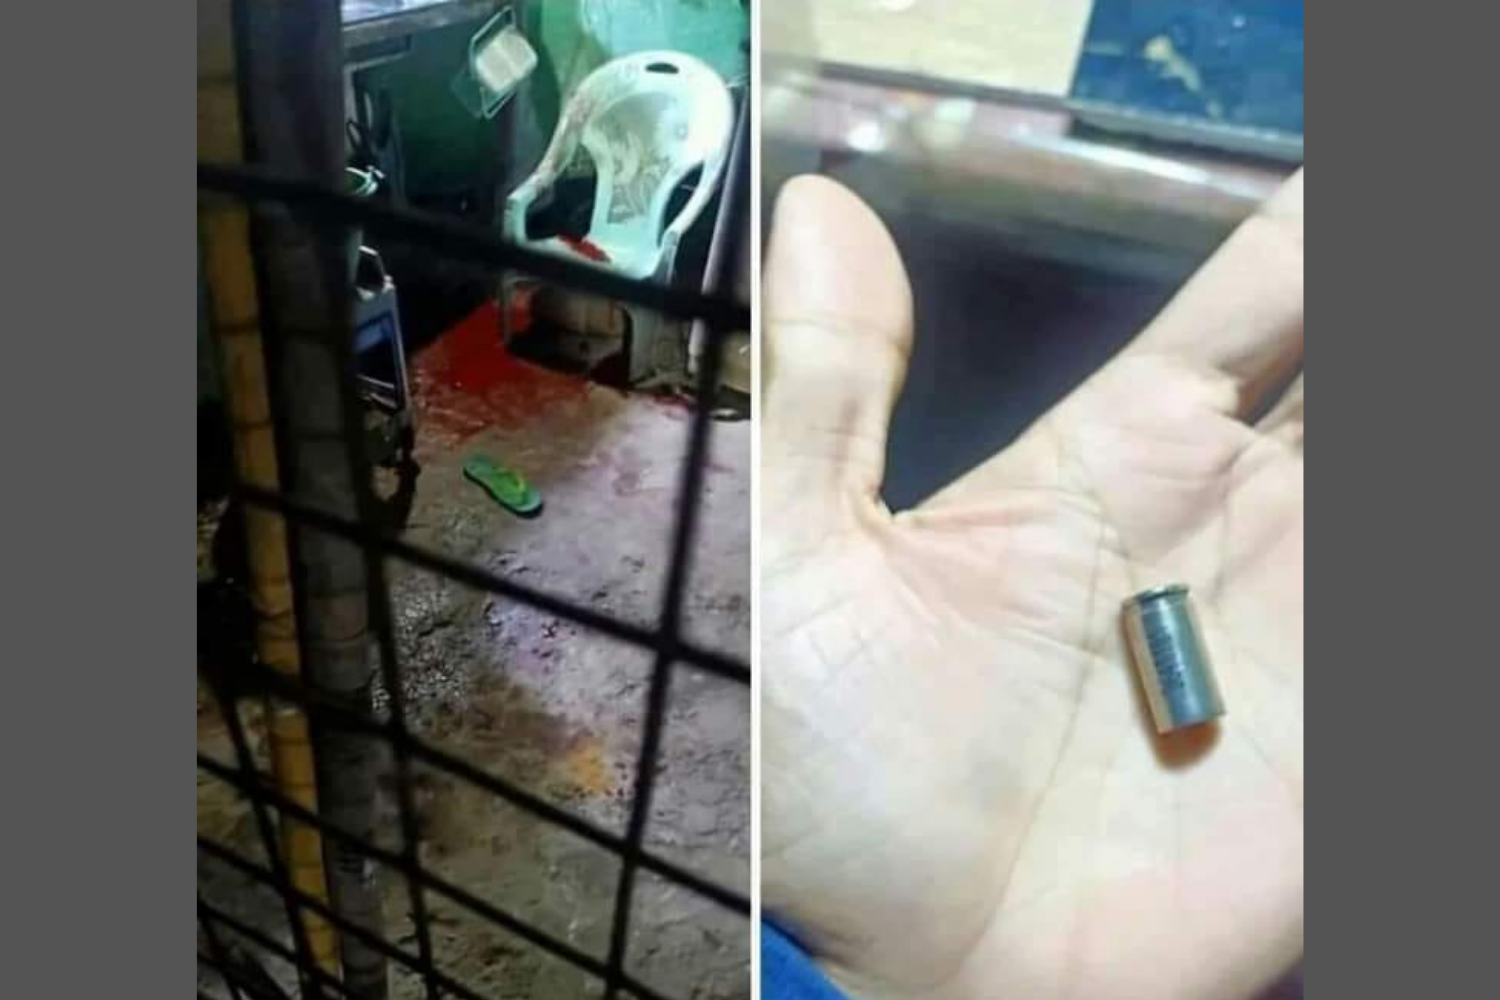 Compilation of U Khin Kyaw's home in Yangon after he was shot on July 5 and a neighbor holding up a bullet found in the home. (Supplied)